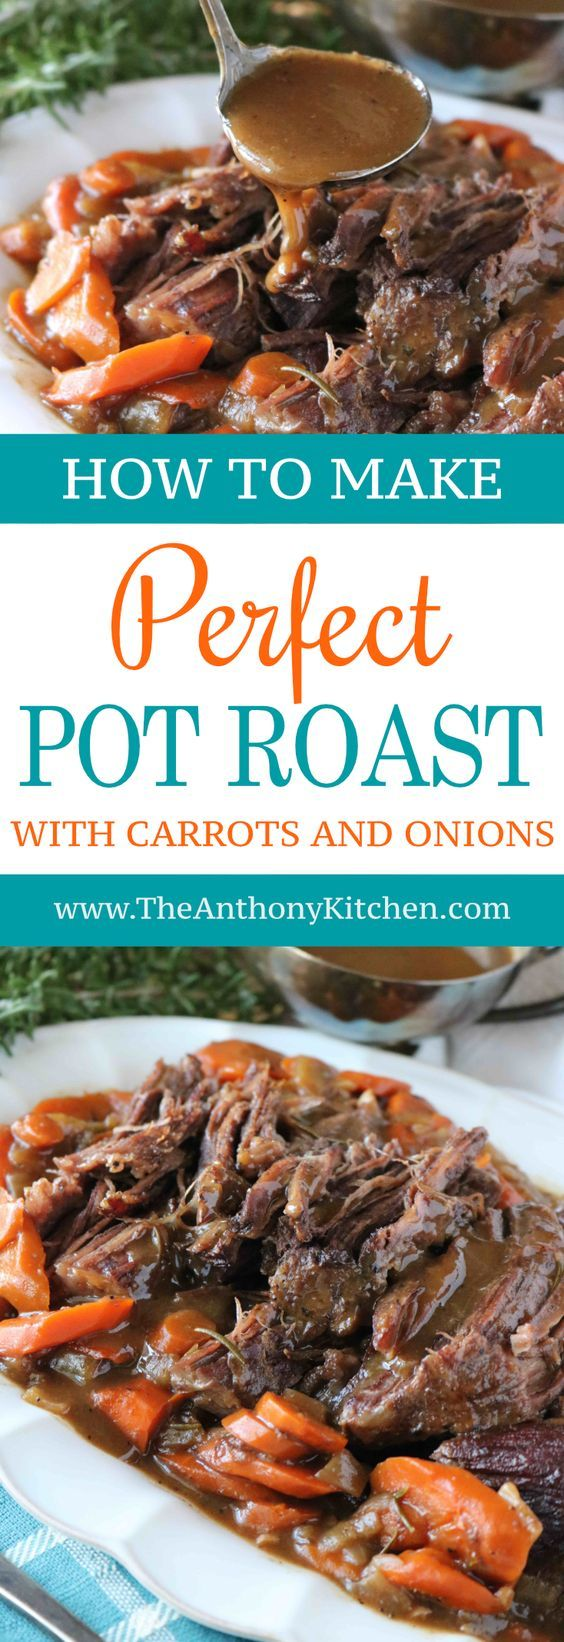 Best Pot Roast Recipe | An easy recipe for fork-tender pot roast made in the oven. The recipe features beef chuck shoulder braised in beef broth and red wine, with carrots, onions and fresh herbs | #potroastoven #potroastrecipe #dutchovenrecipe #familydinneridea #easyrecipes